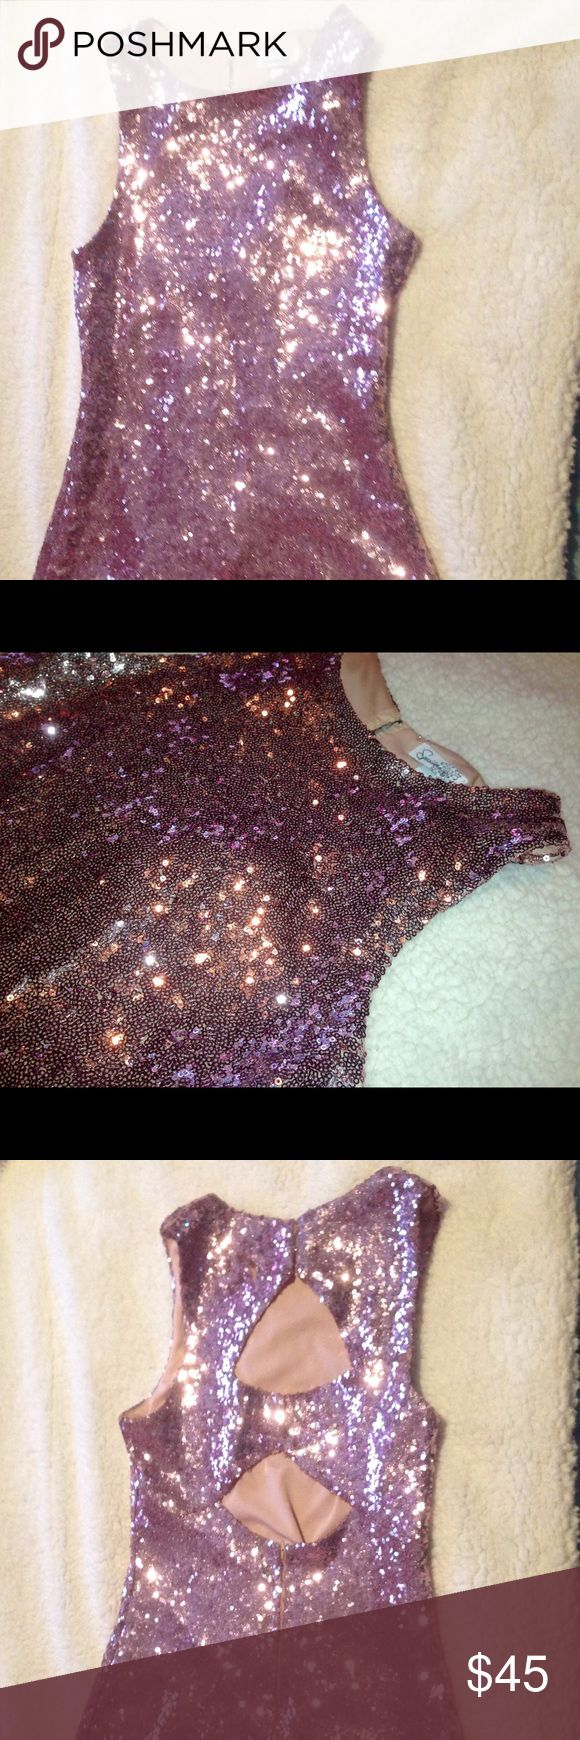 Metallic Sequin Dress 👗 Sleeveless sequin dress. Size: 9  Color: light purple  NEW without tags from Macy's  Self: 90% Nylon 10% Spandex  Lining: 100% Polyester  Feel FREE to make an OFFER‼️ Speechless Dresses Mini